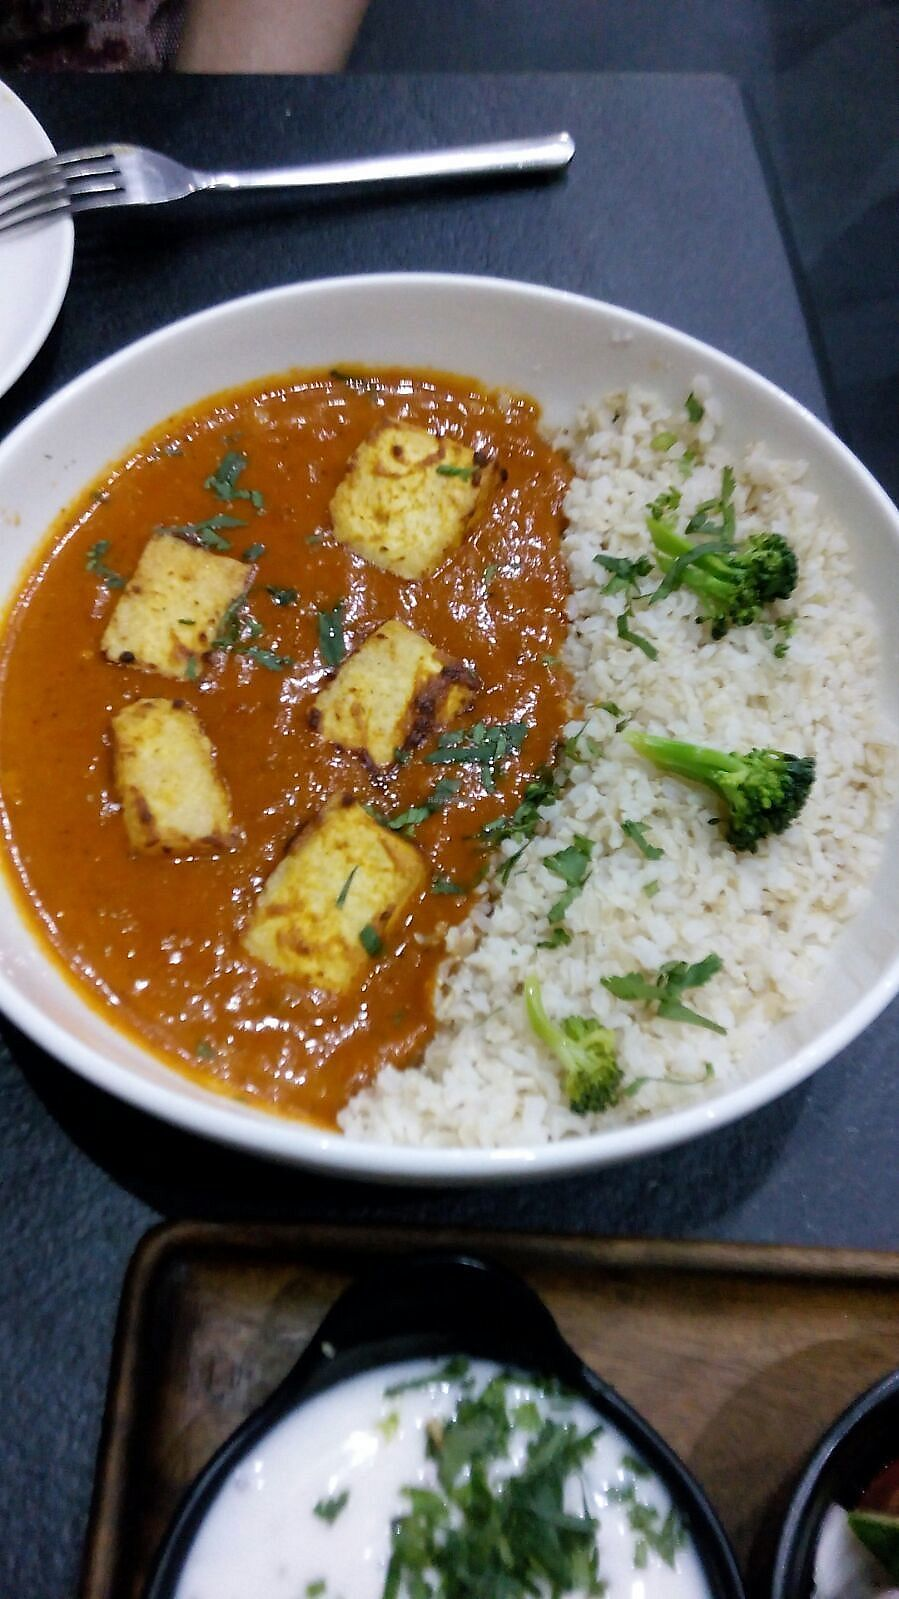 """Photo of Aja  by <a href=""""/members/profile/RC1"""">RC1</a> <br/>Tofu Tikka Masala <br/> April 8, 2018  - <a href='/contact/abuse/image/57200/382373'>Report</a>"""